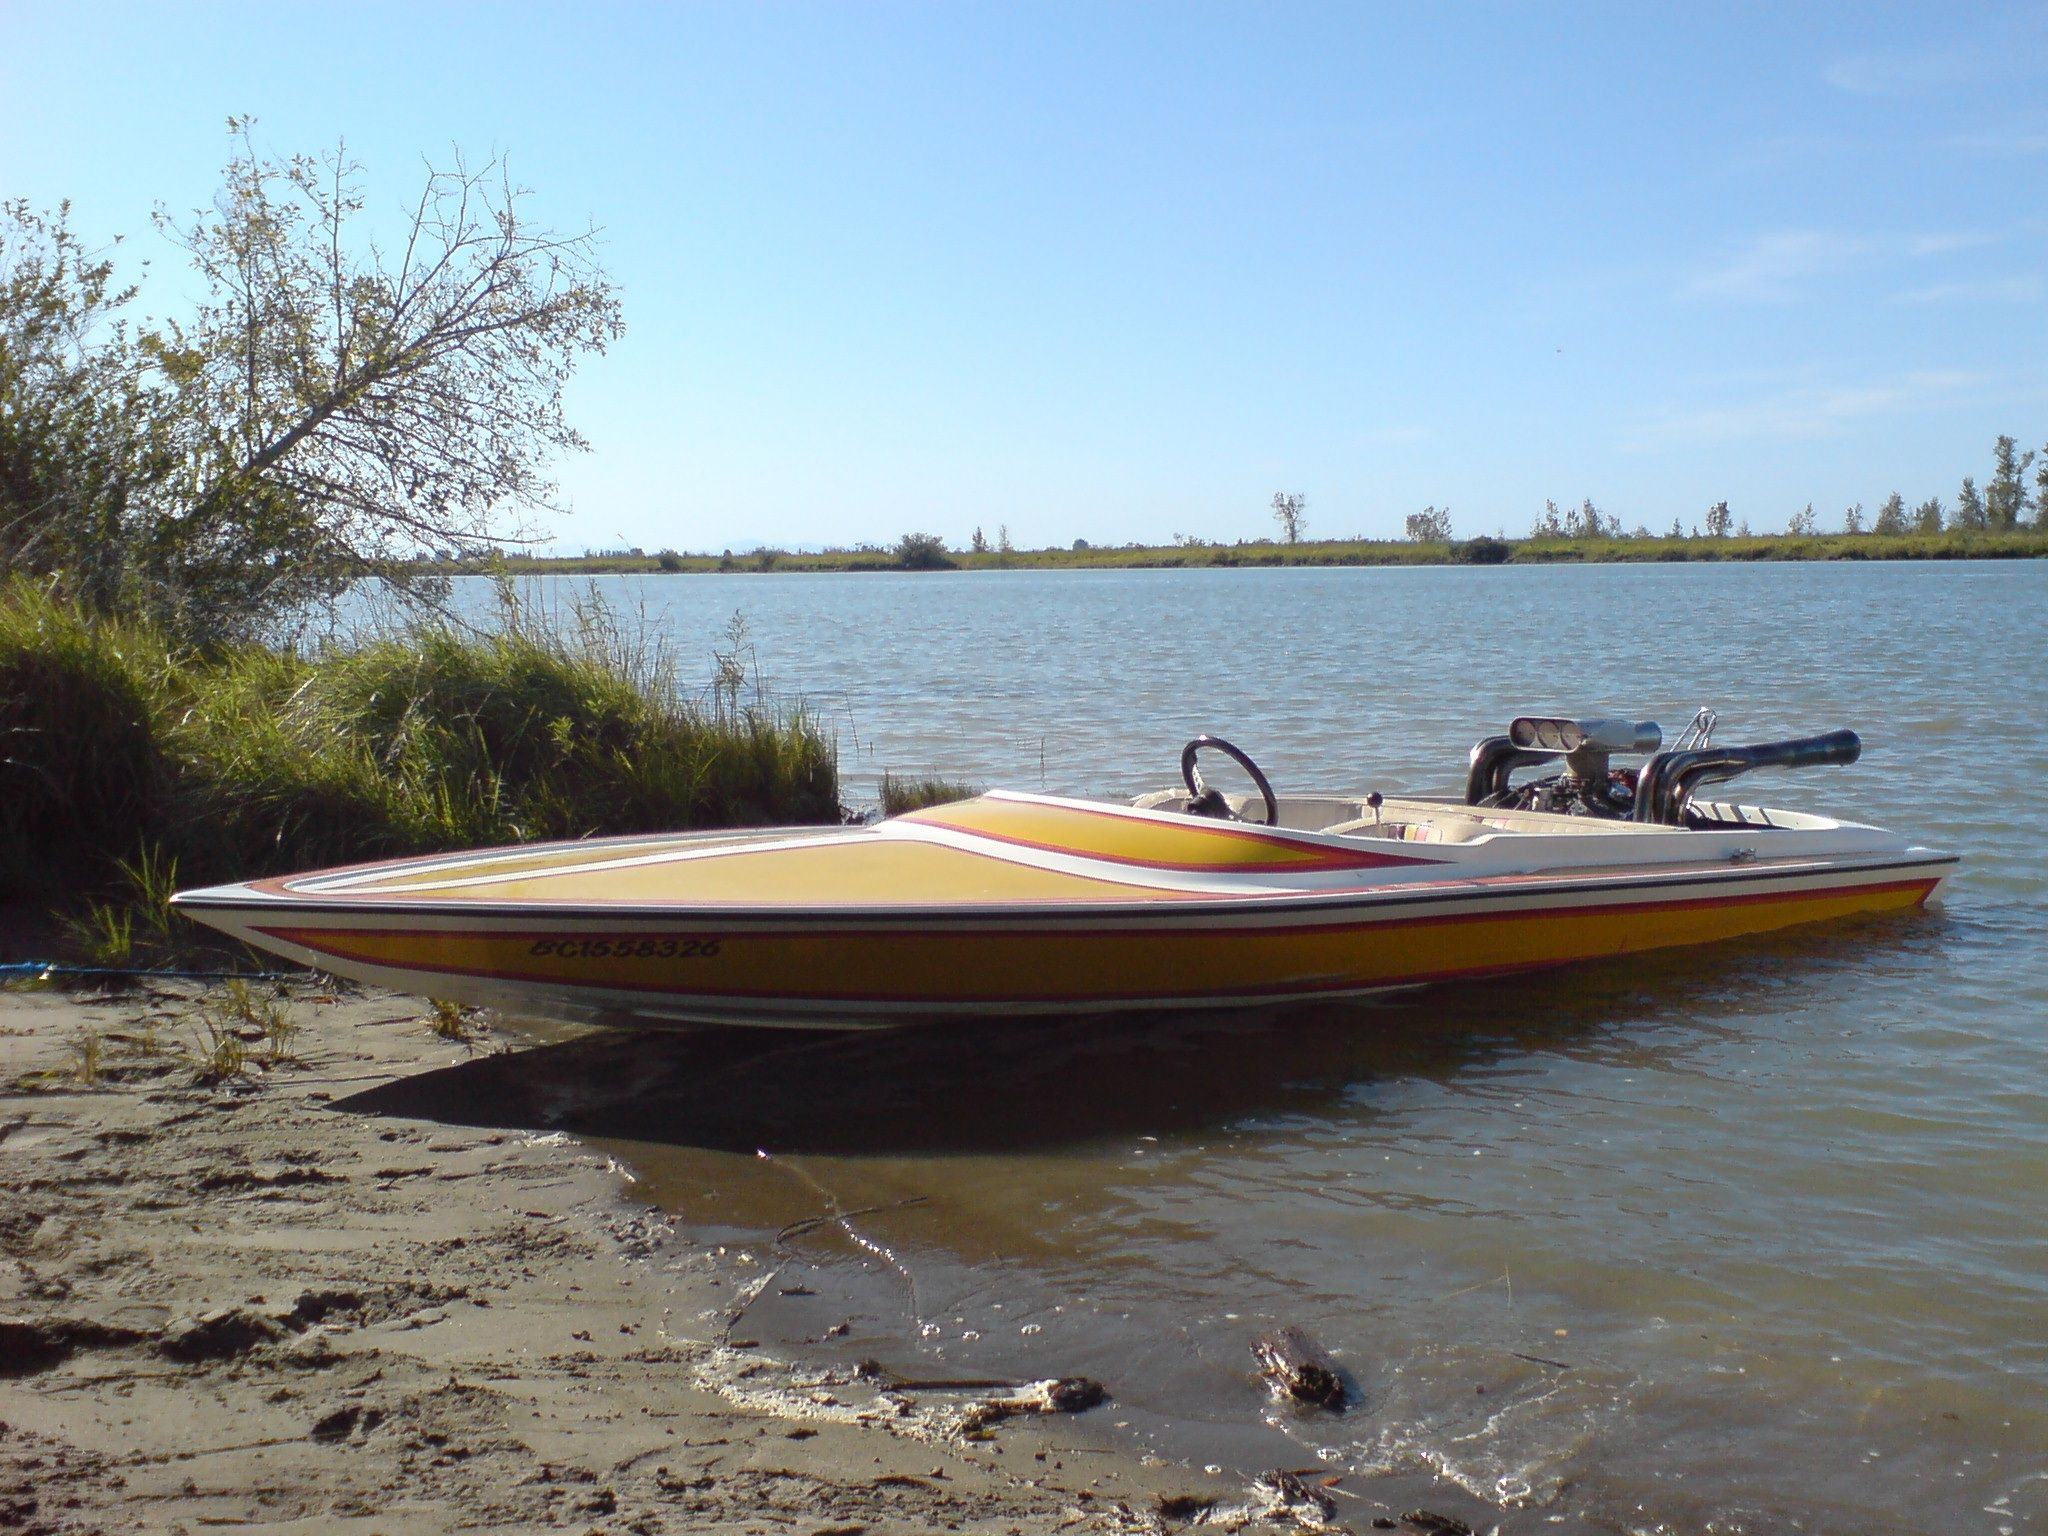 454 Jet Boat Plumbing Wiring Diagram Can Am Pinterest Boating Jets And Power Boats 2048x1536